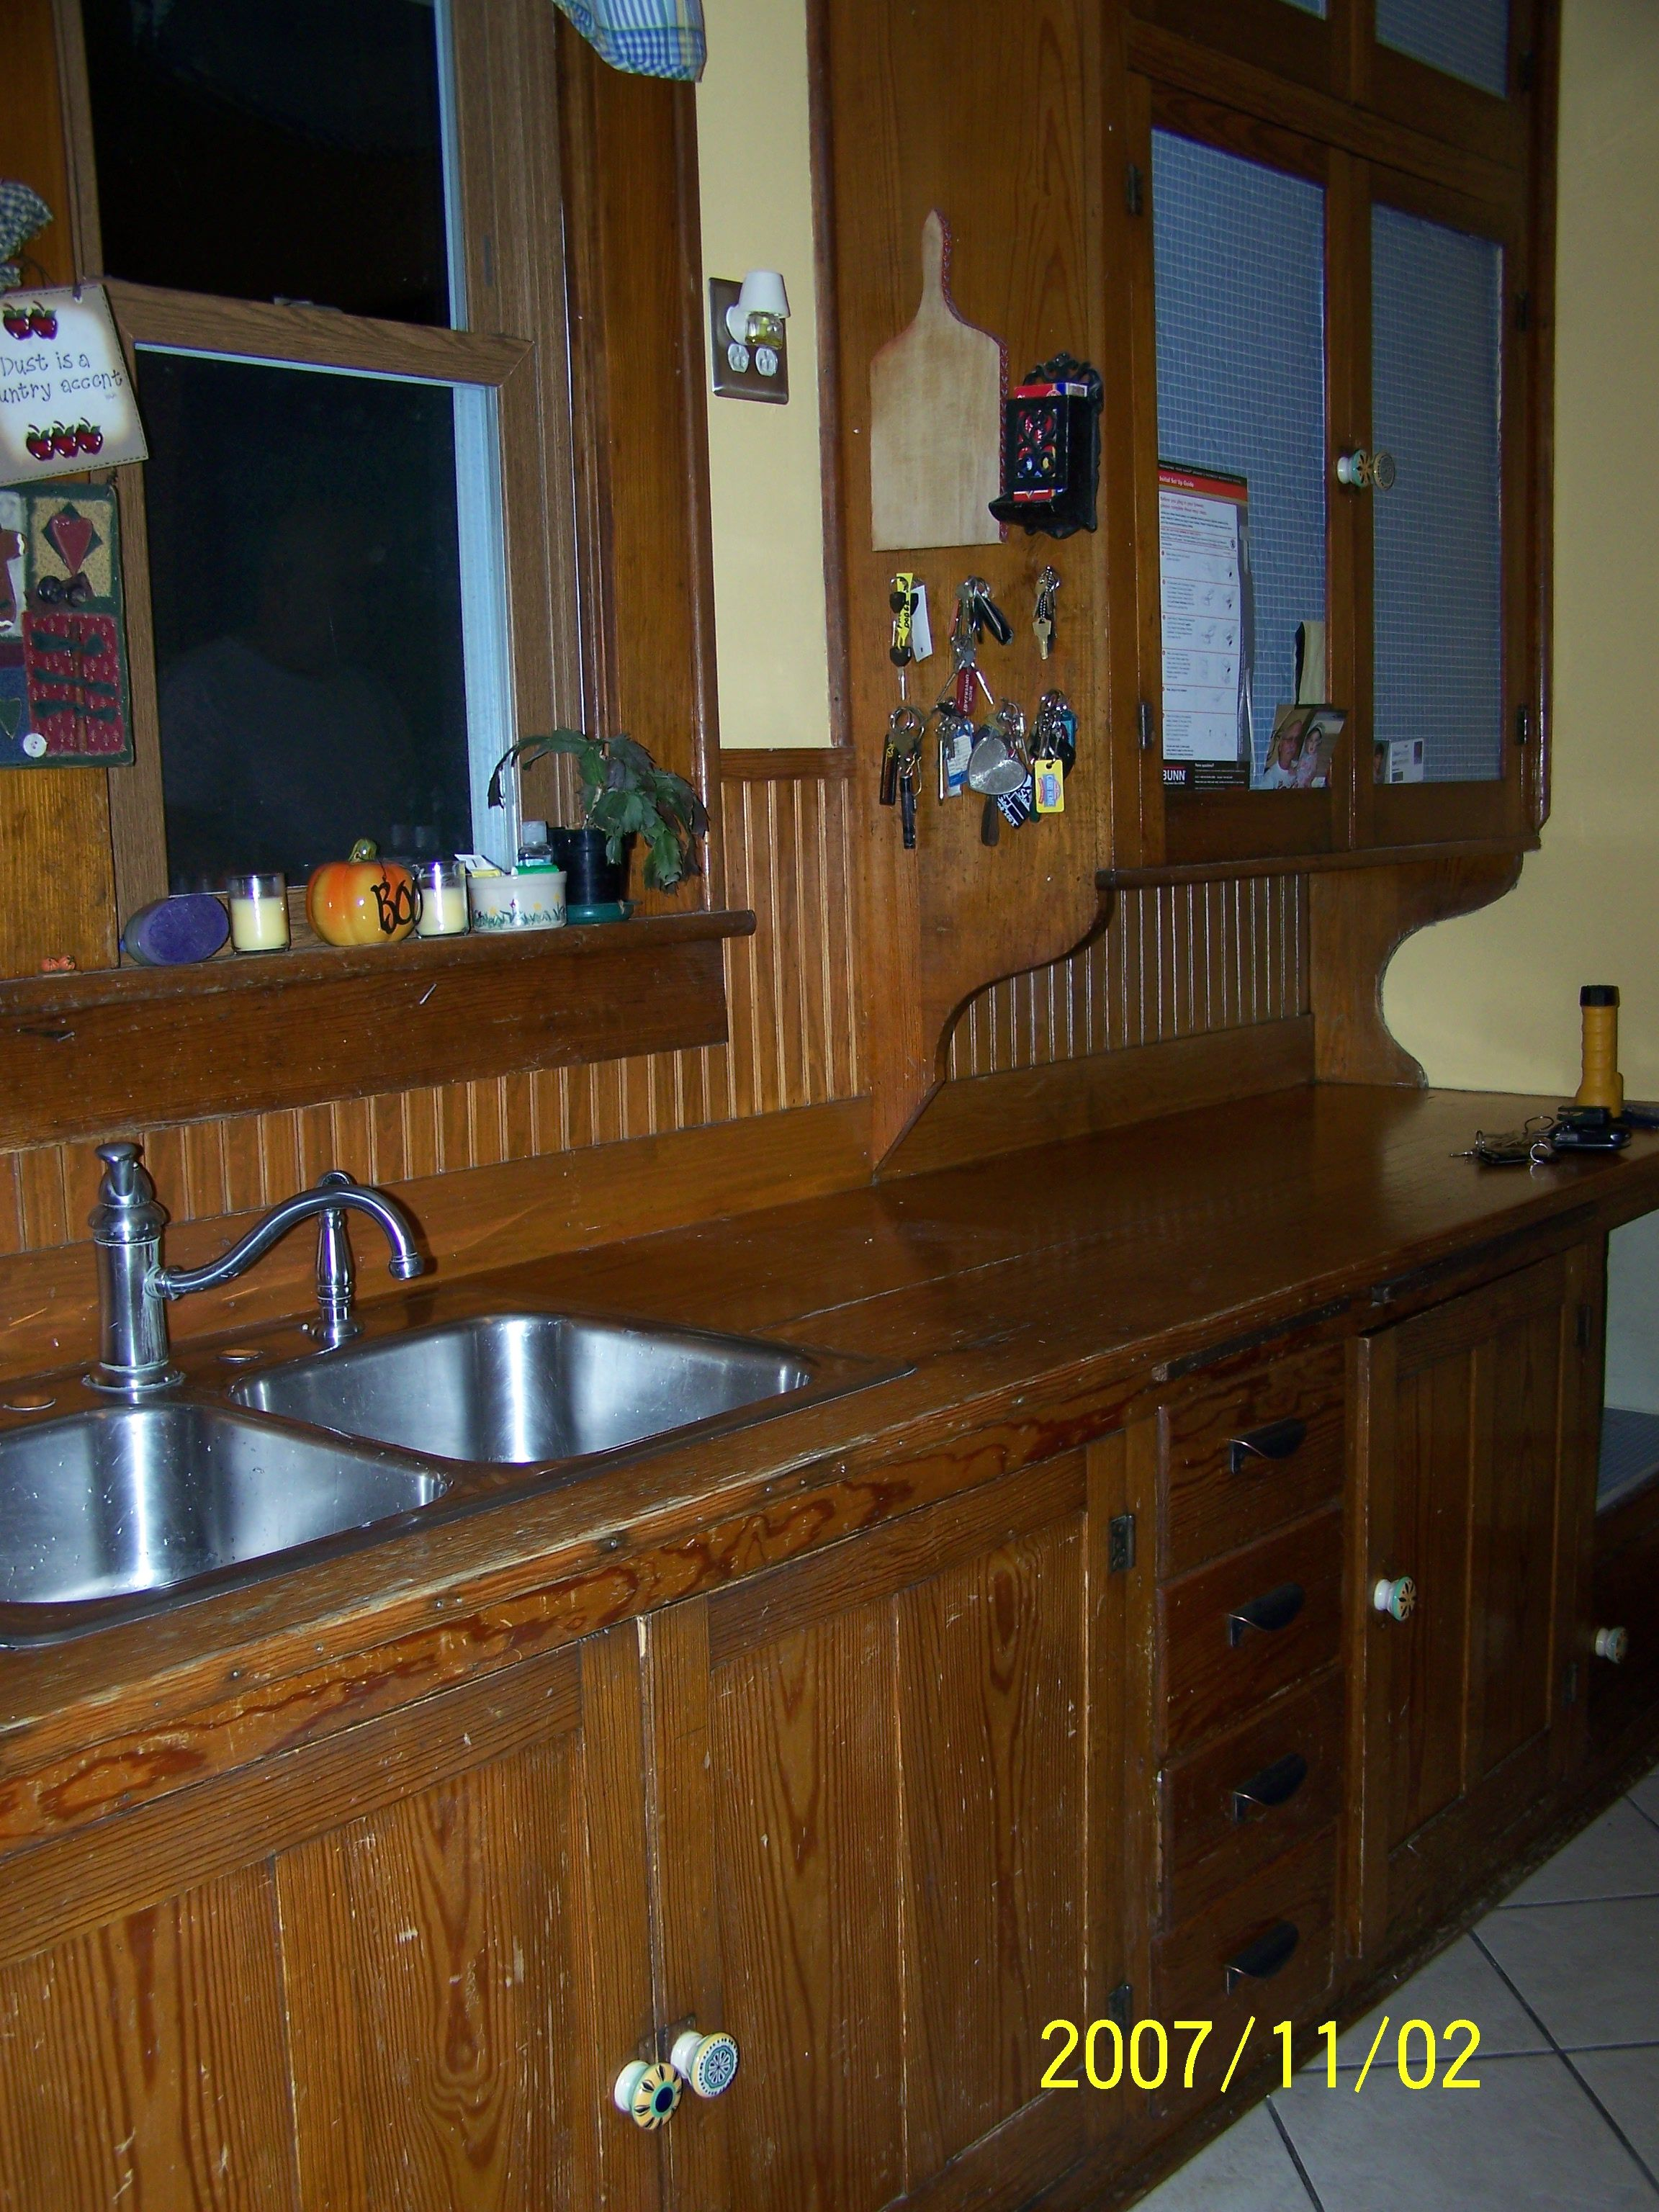 Bungalow Kitchen Original Fir Cabinets In A 1923 Bungalow Kitchen Early 1900s